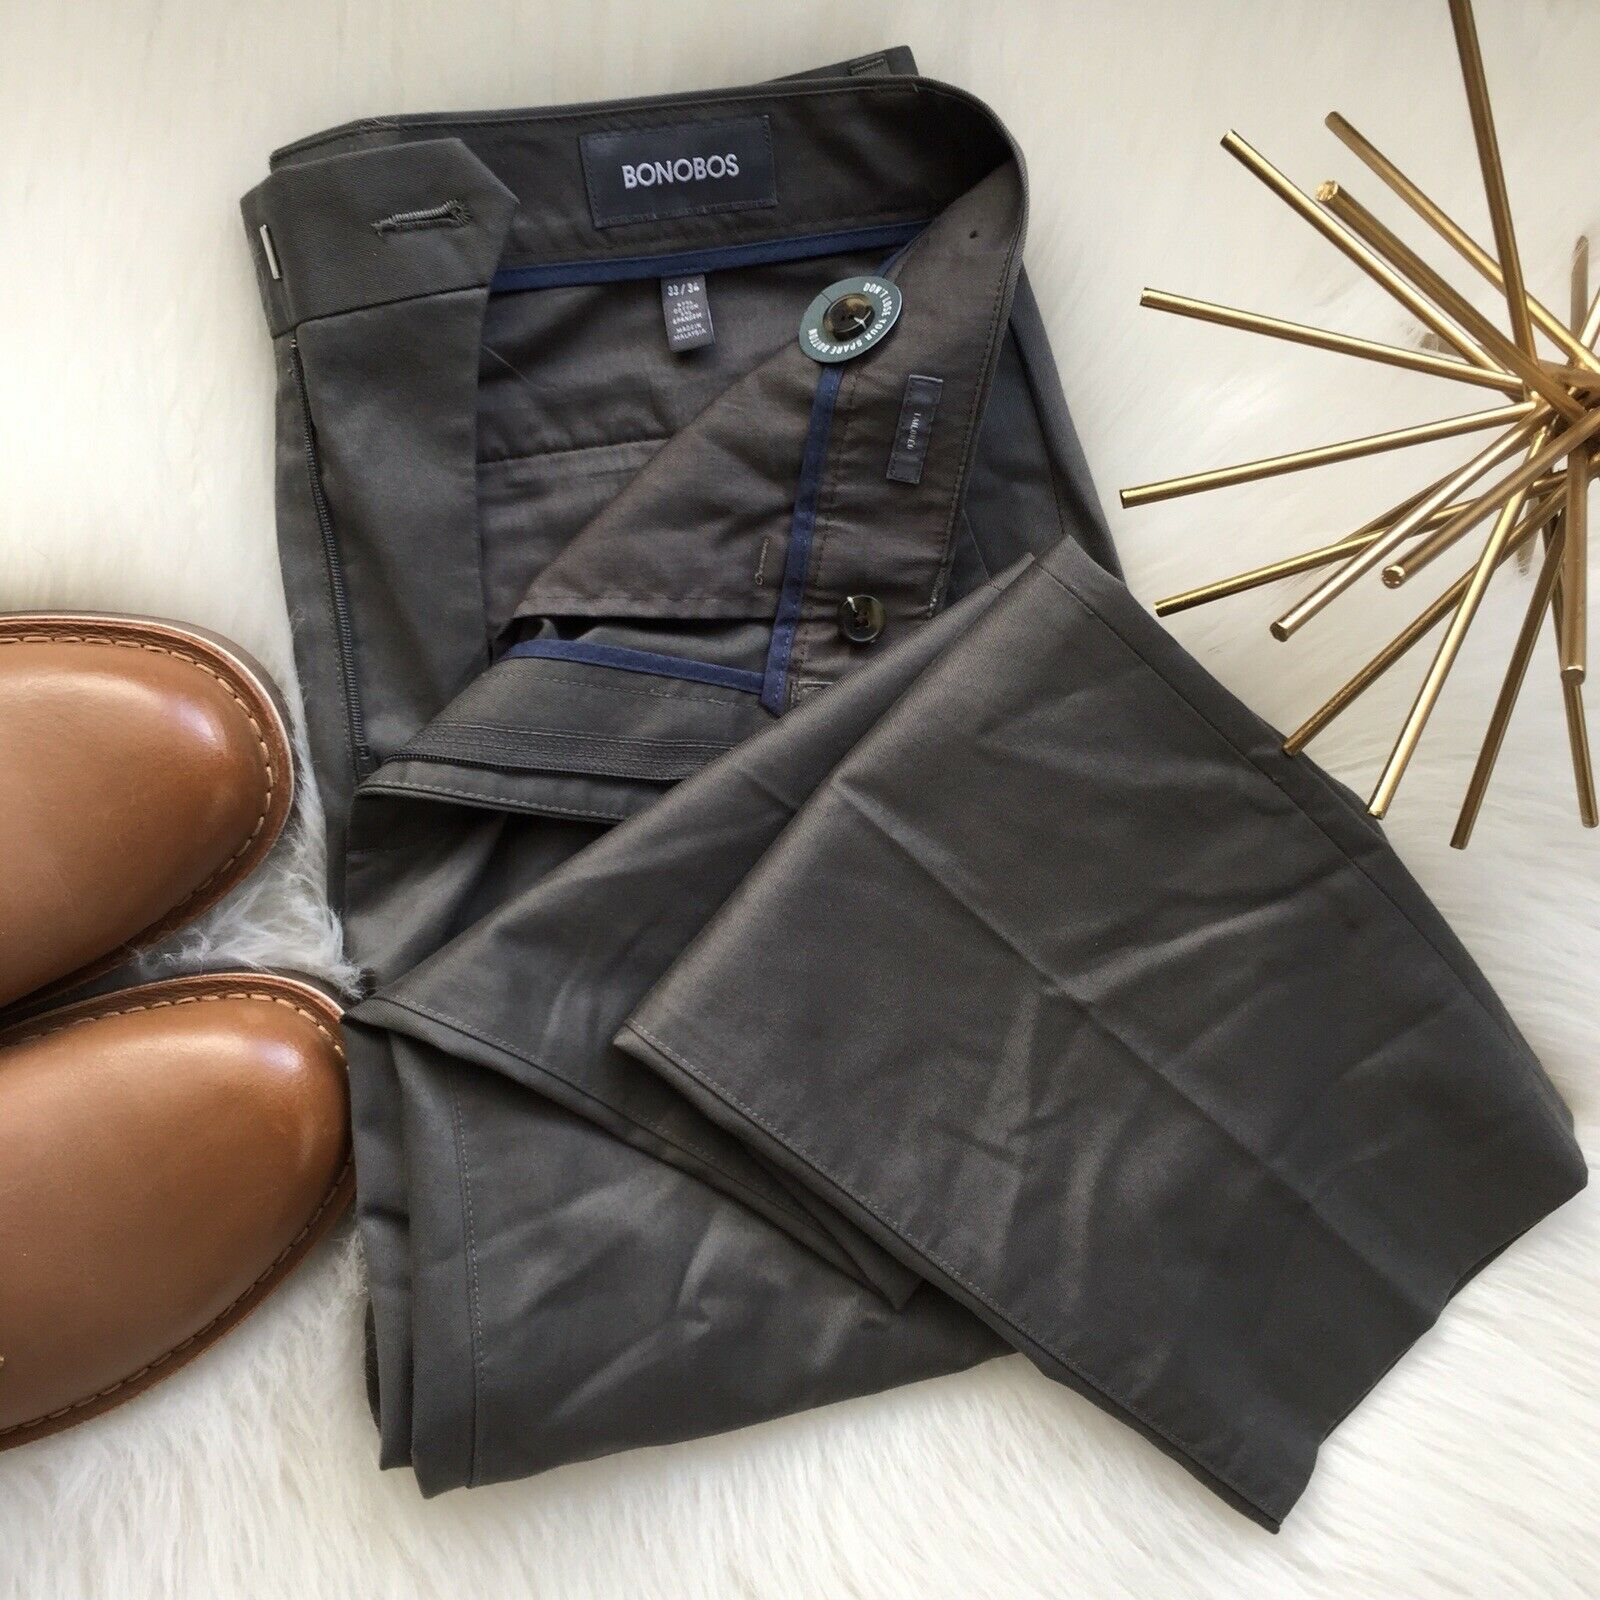 New Bonobos Dress Pants Tailored 33x34 Stretch Weekday Warriors FREE Shipping